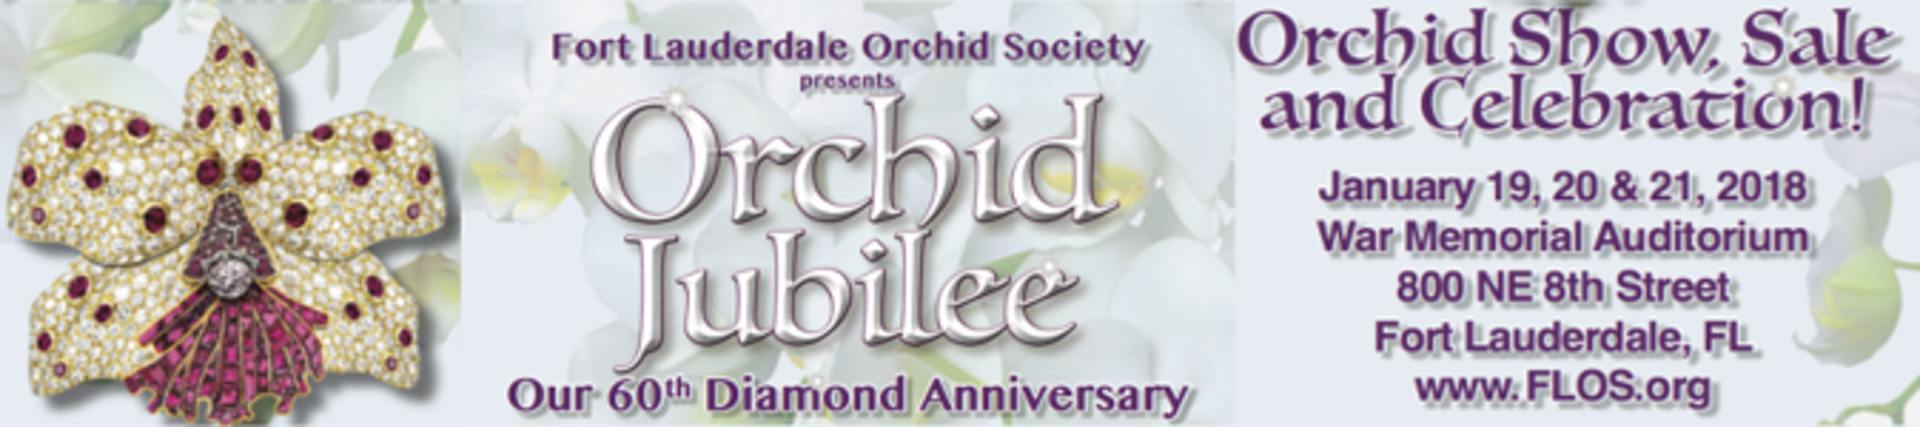 Orchid Jubilee- The Fort Lauderdale Orchid Show